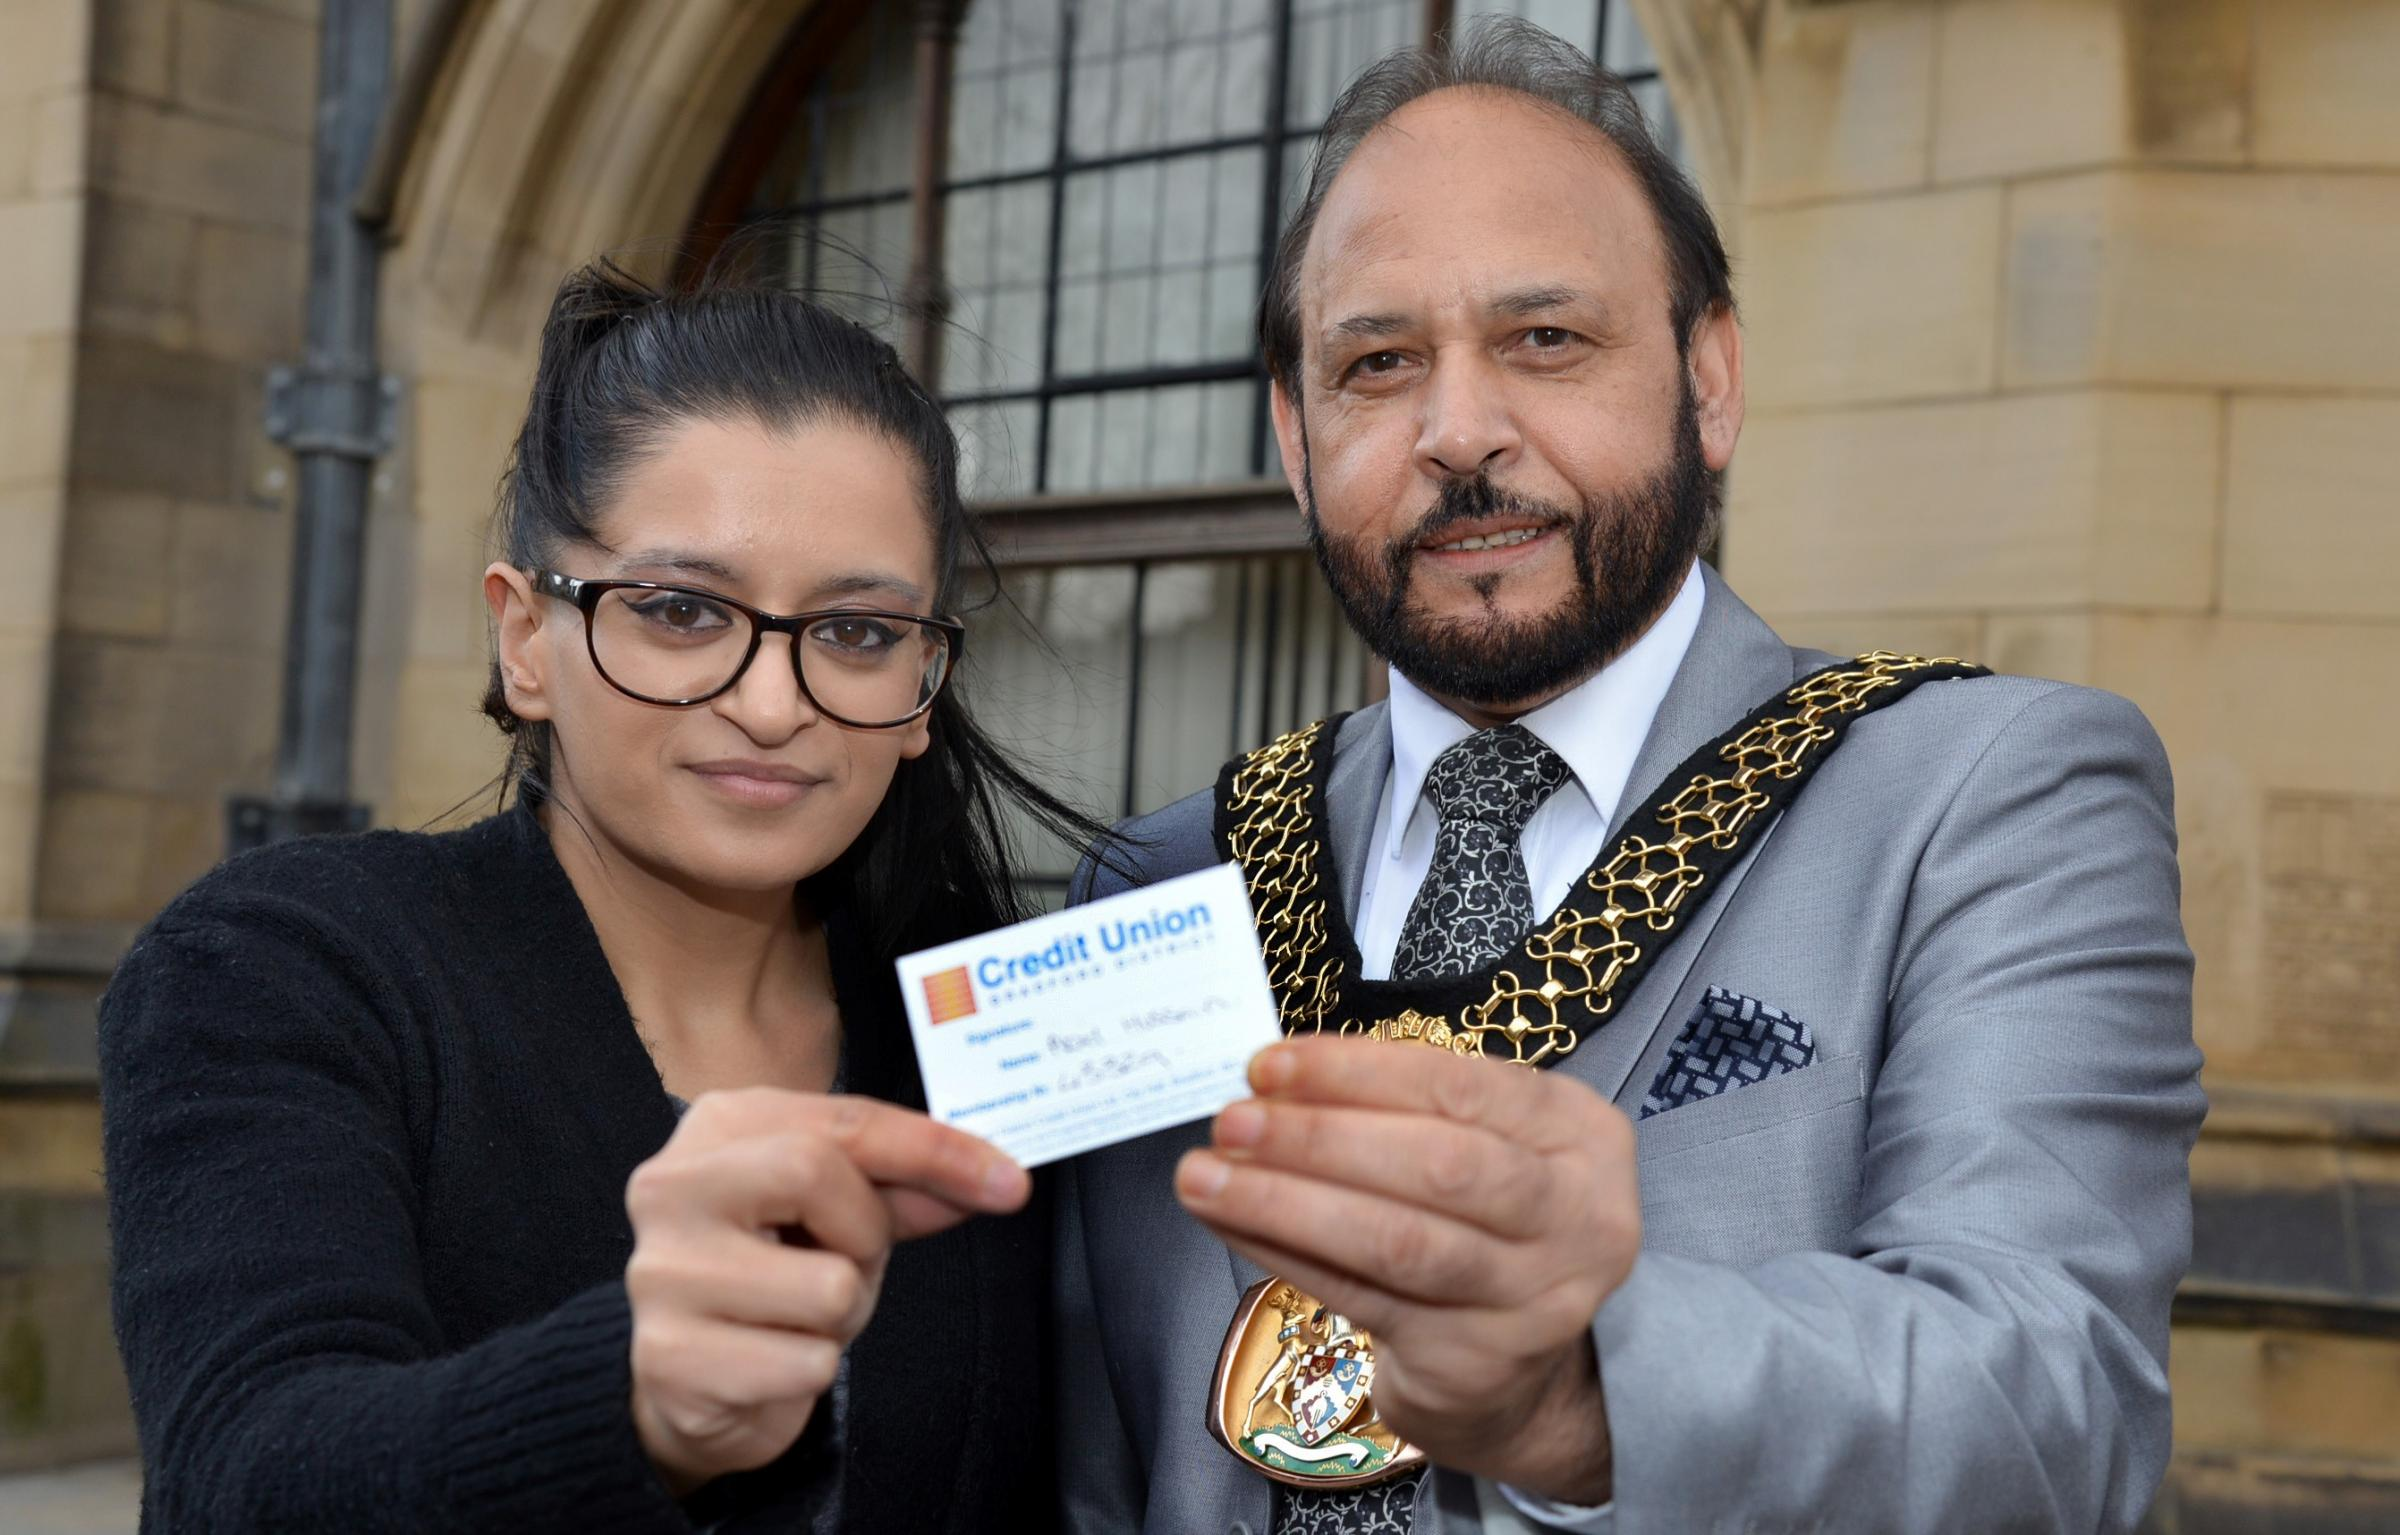 IN CREDIT: The Lord Mayor of Bradford Cllr Abid Hussain receives his savings account card from admin officer Sofia Riaz